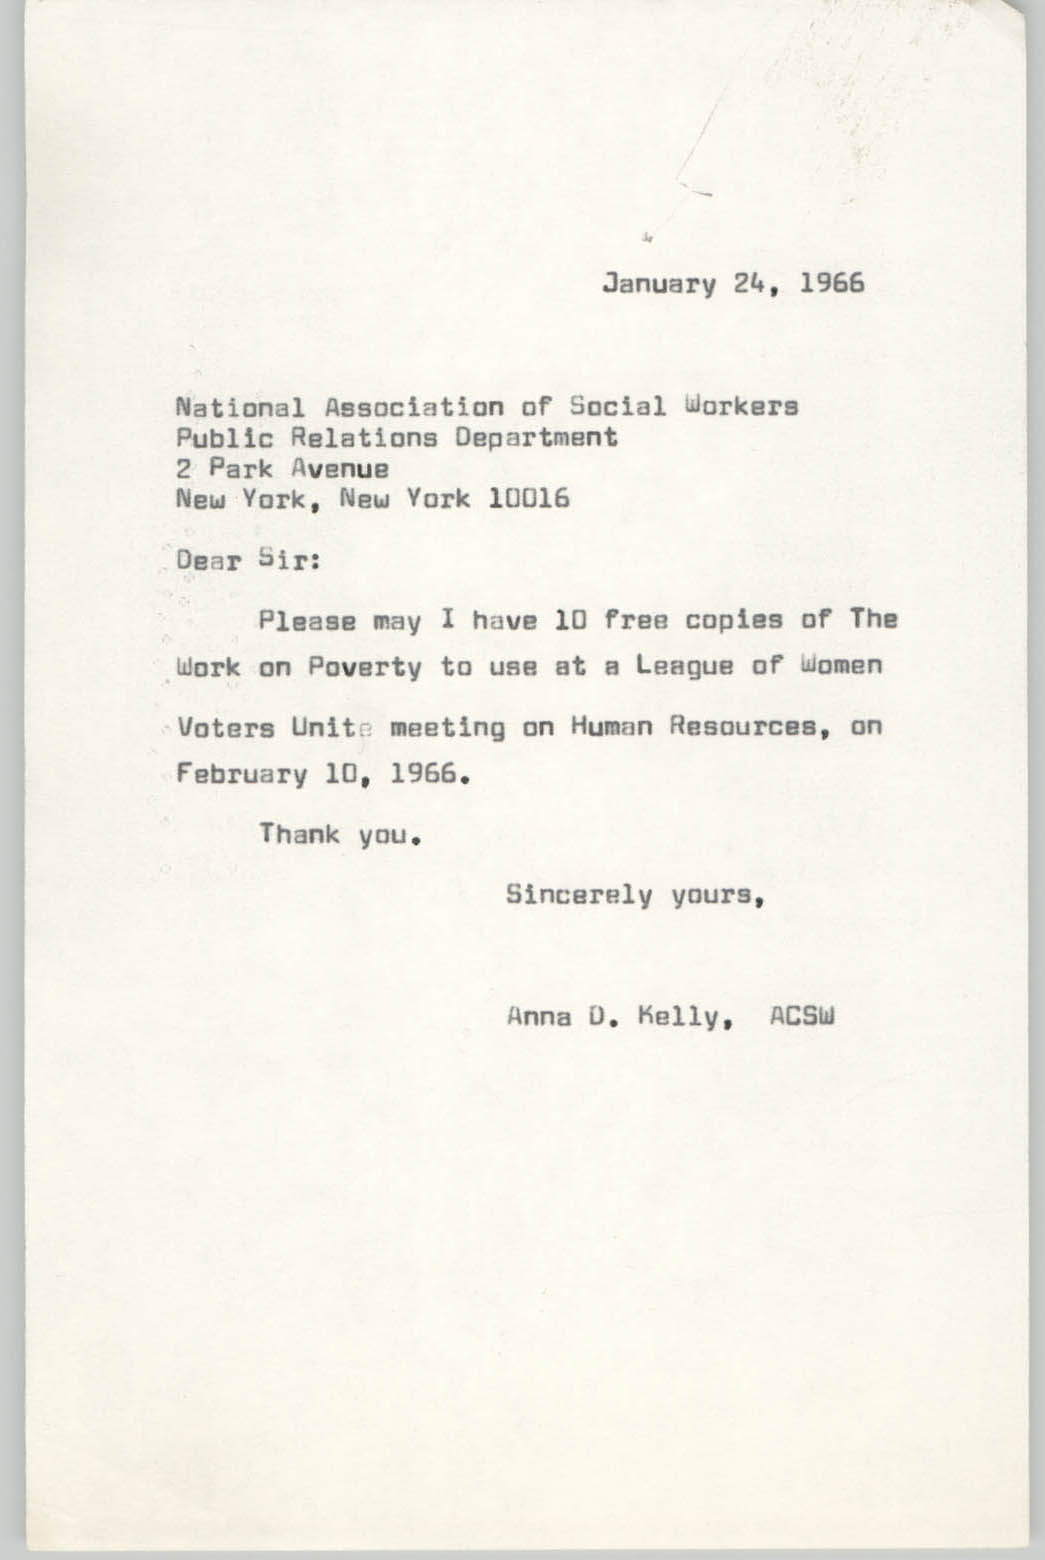 Letter from Anna D. Kelly to National Association of Social Workers, January 24, 1966